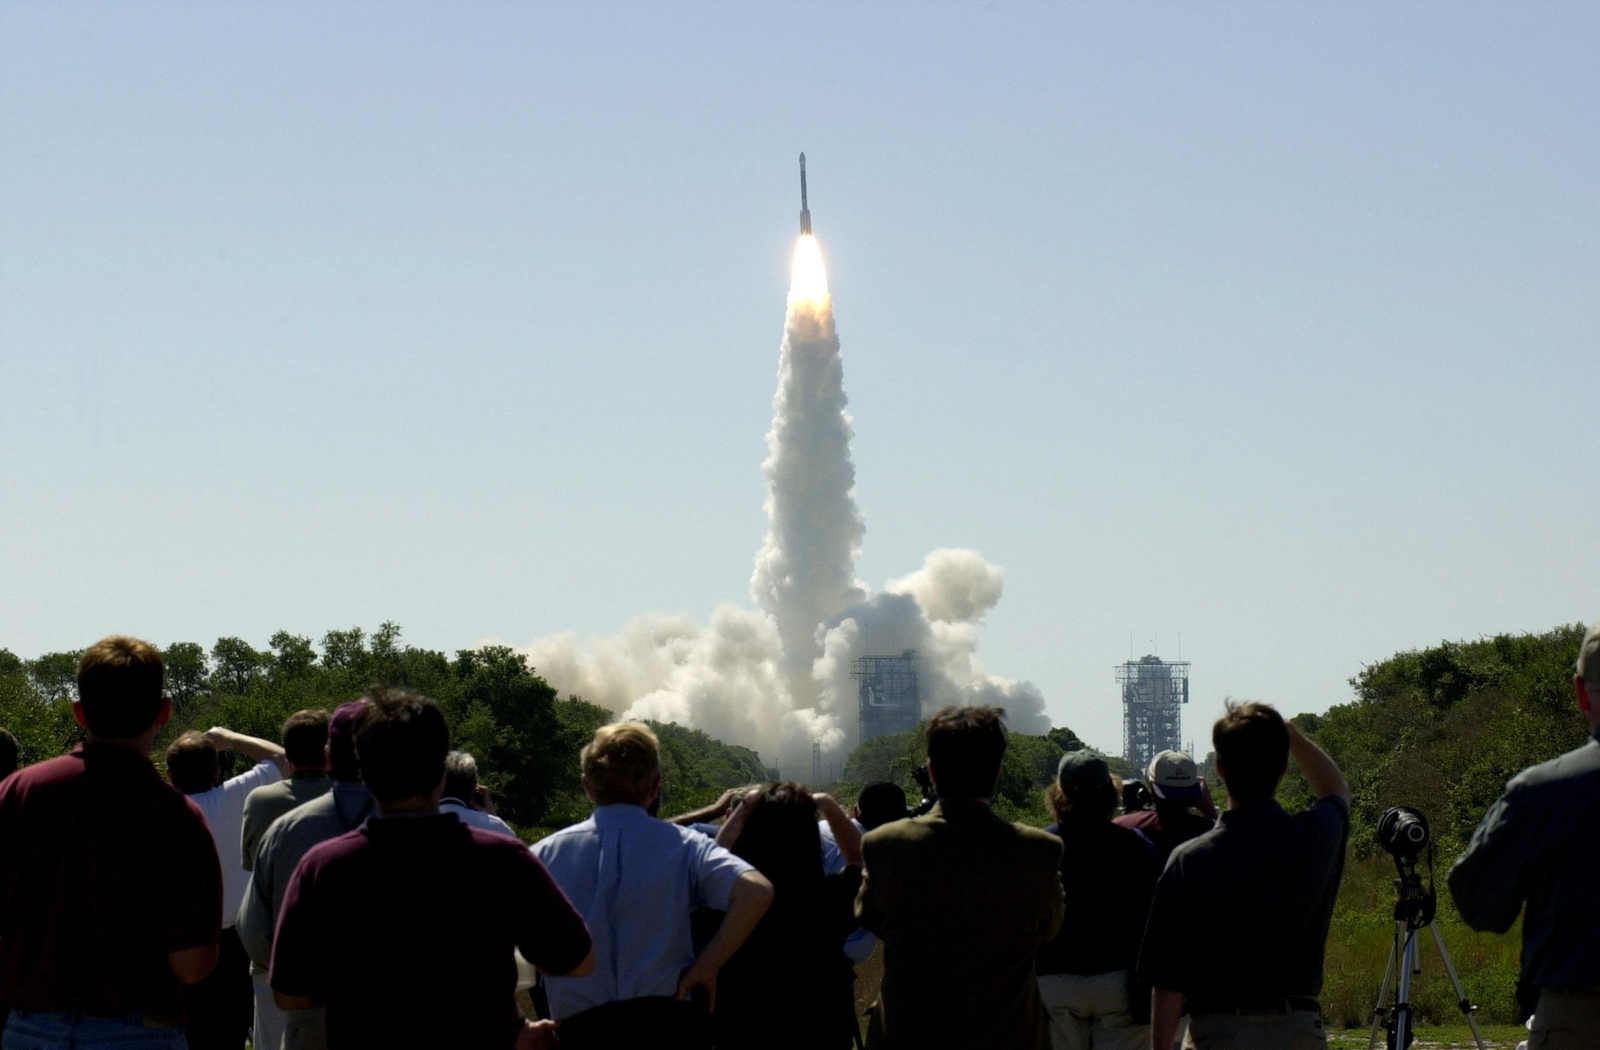 At 11:02 a.m. EDT on April 7, 2001, crowds watch a Boeing Delta II rocket lift off from Cape Canaveral Air Force Station, Florida, carrying NASA's 2001 Mars Odyssey spacecraft into space on its seven-month journey to Mars.